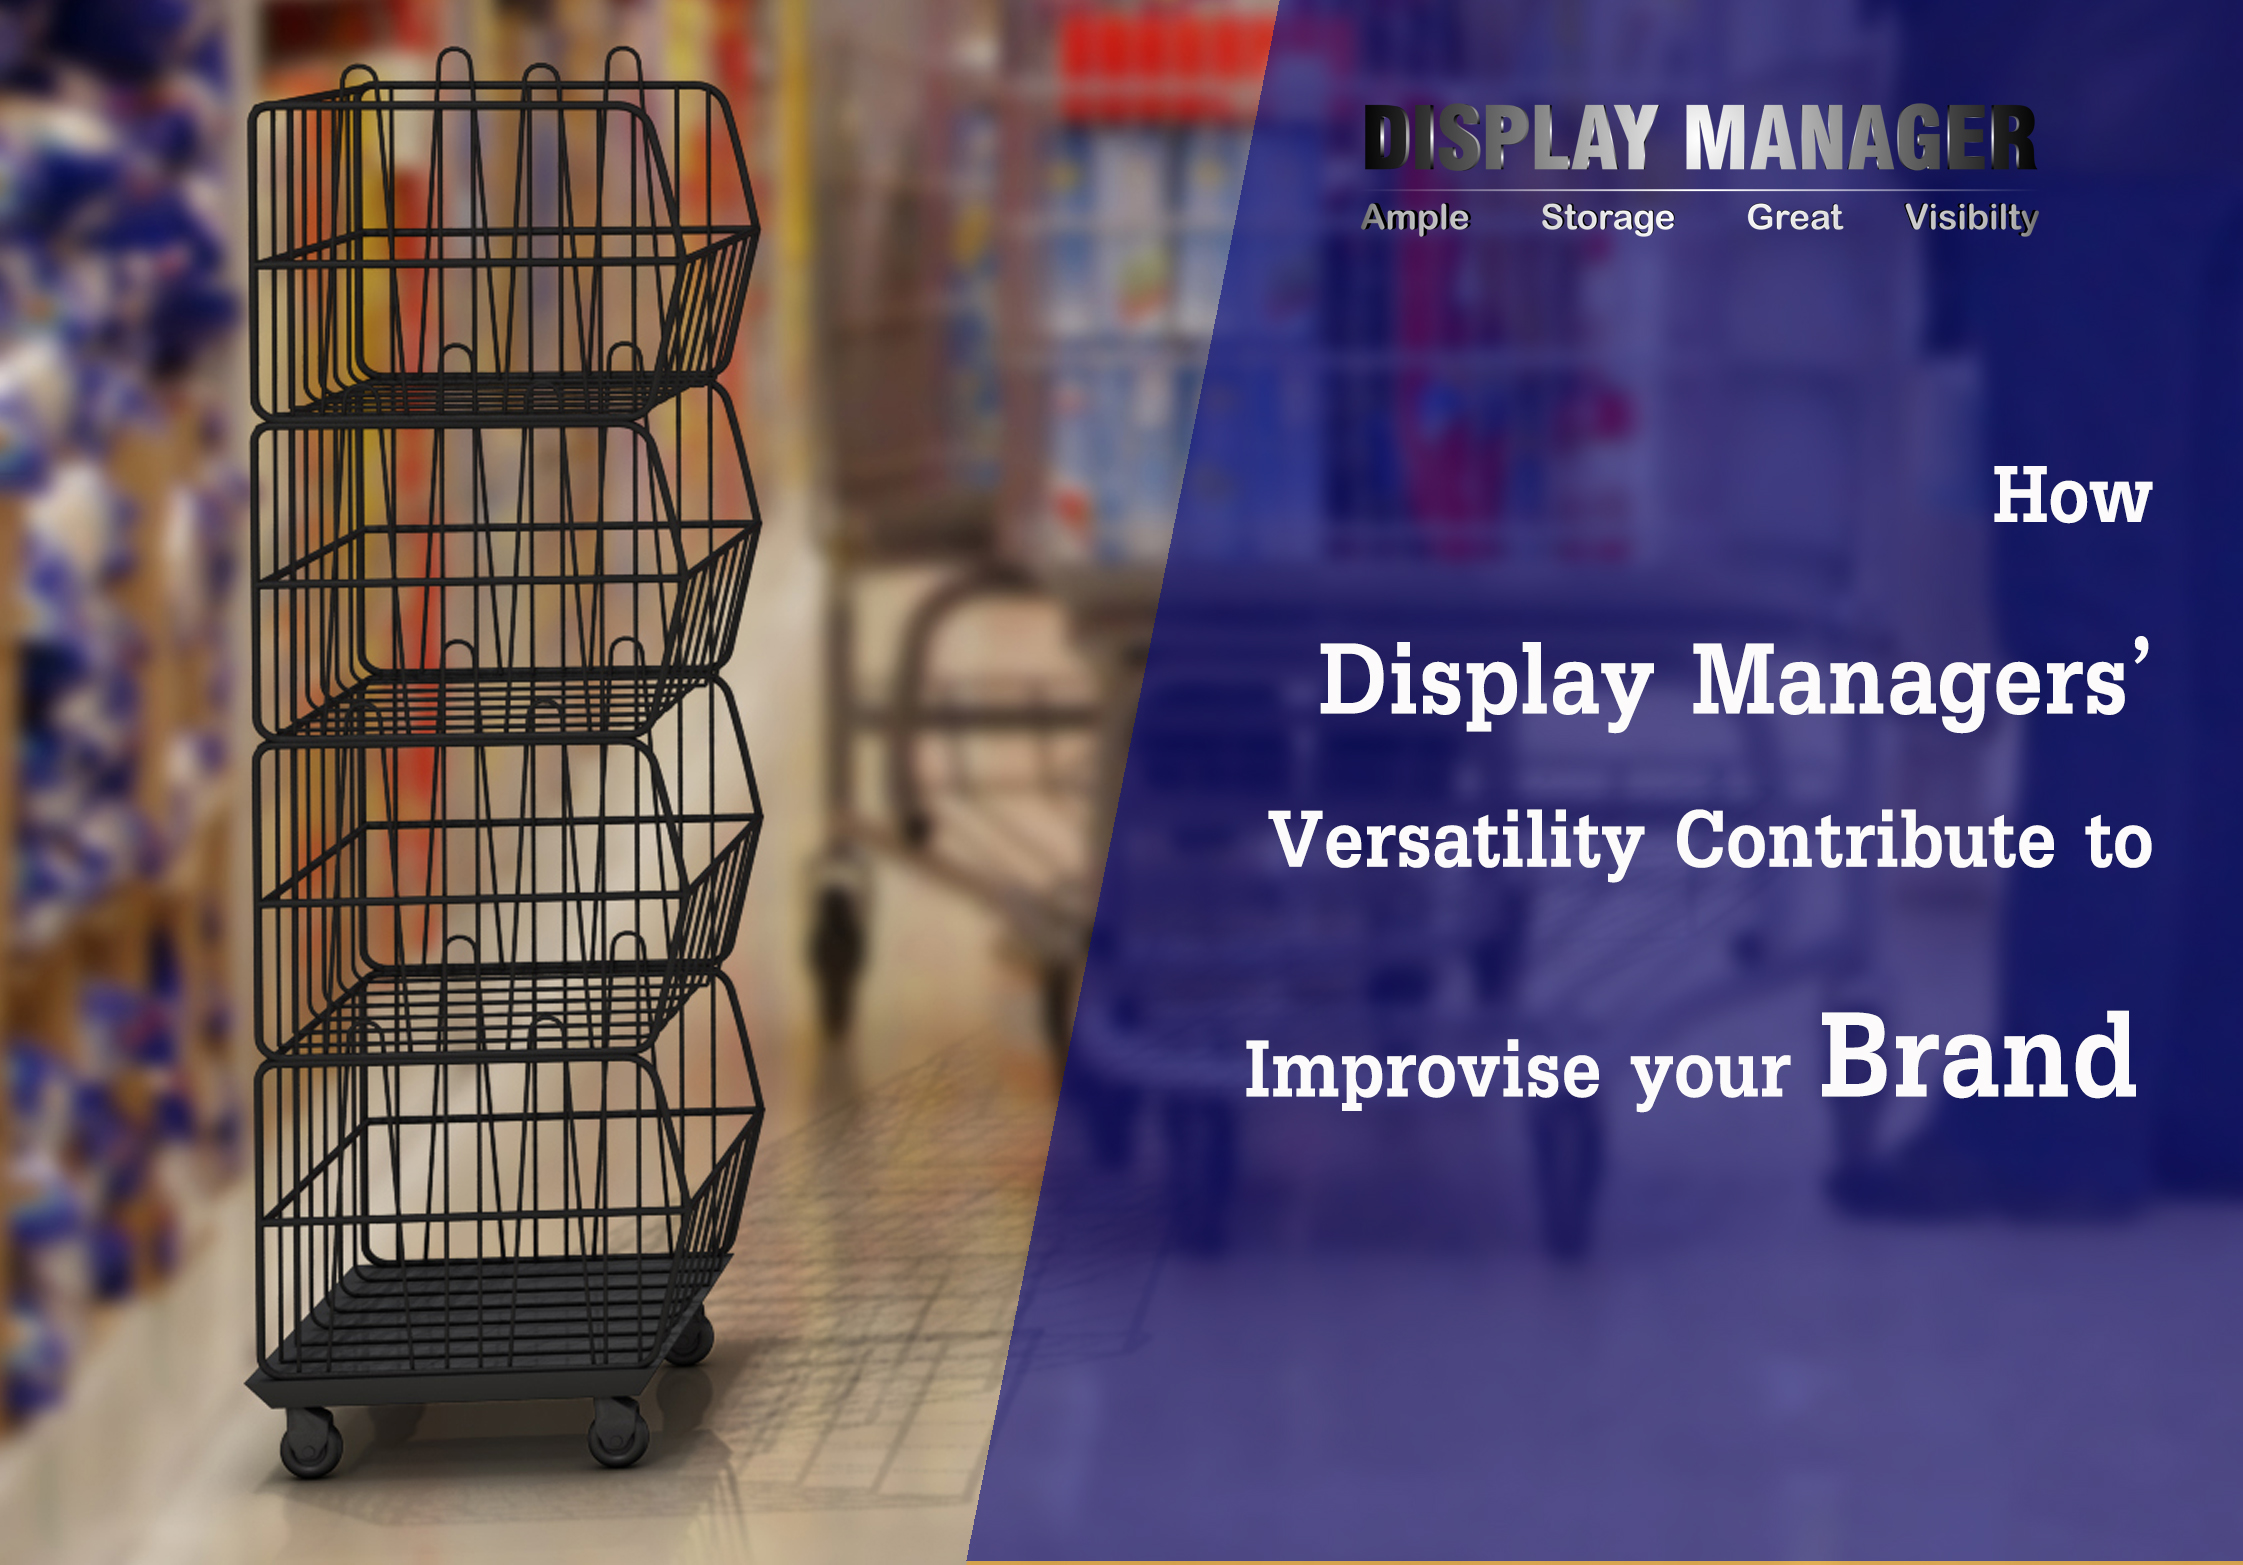 How Display Managers' Versatility Contribute to Improvise your Brand